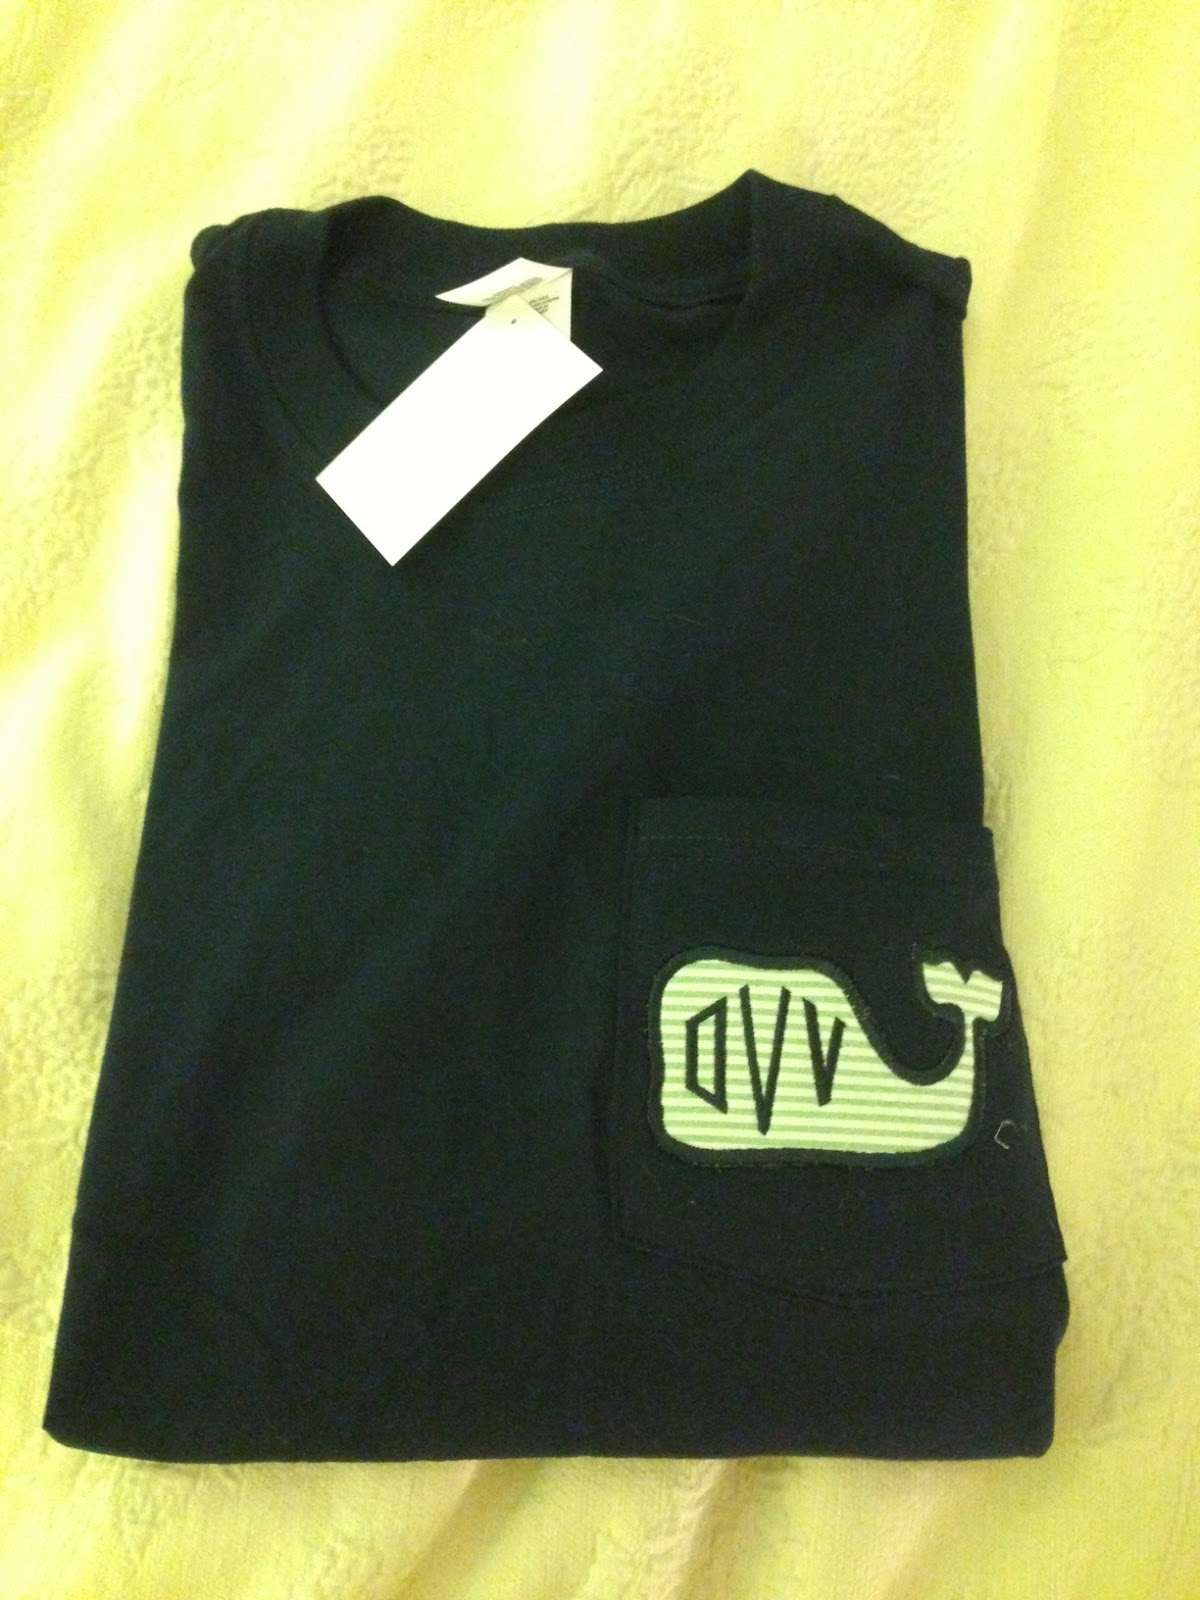 Overdressed Olivia: The Monogramming Queen T-